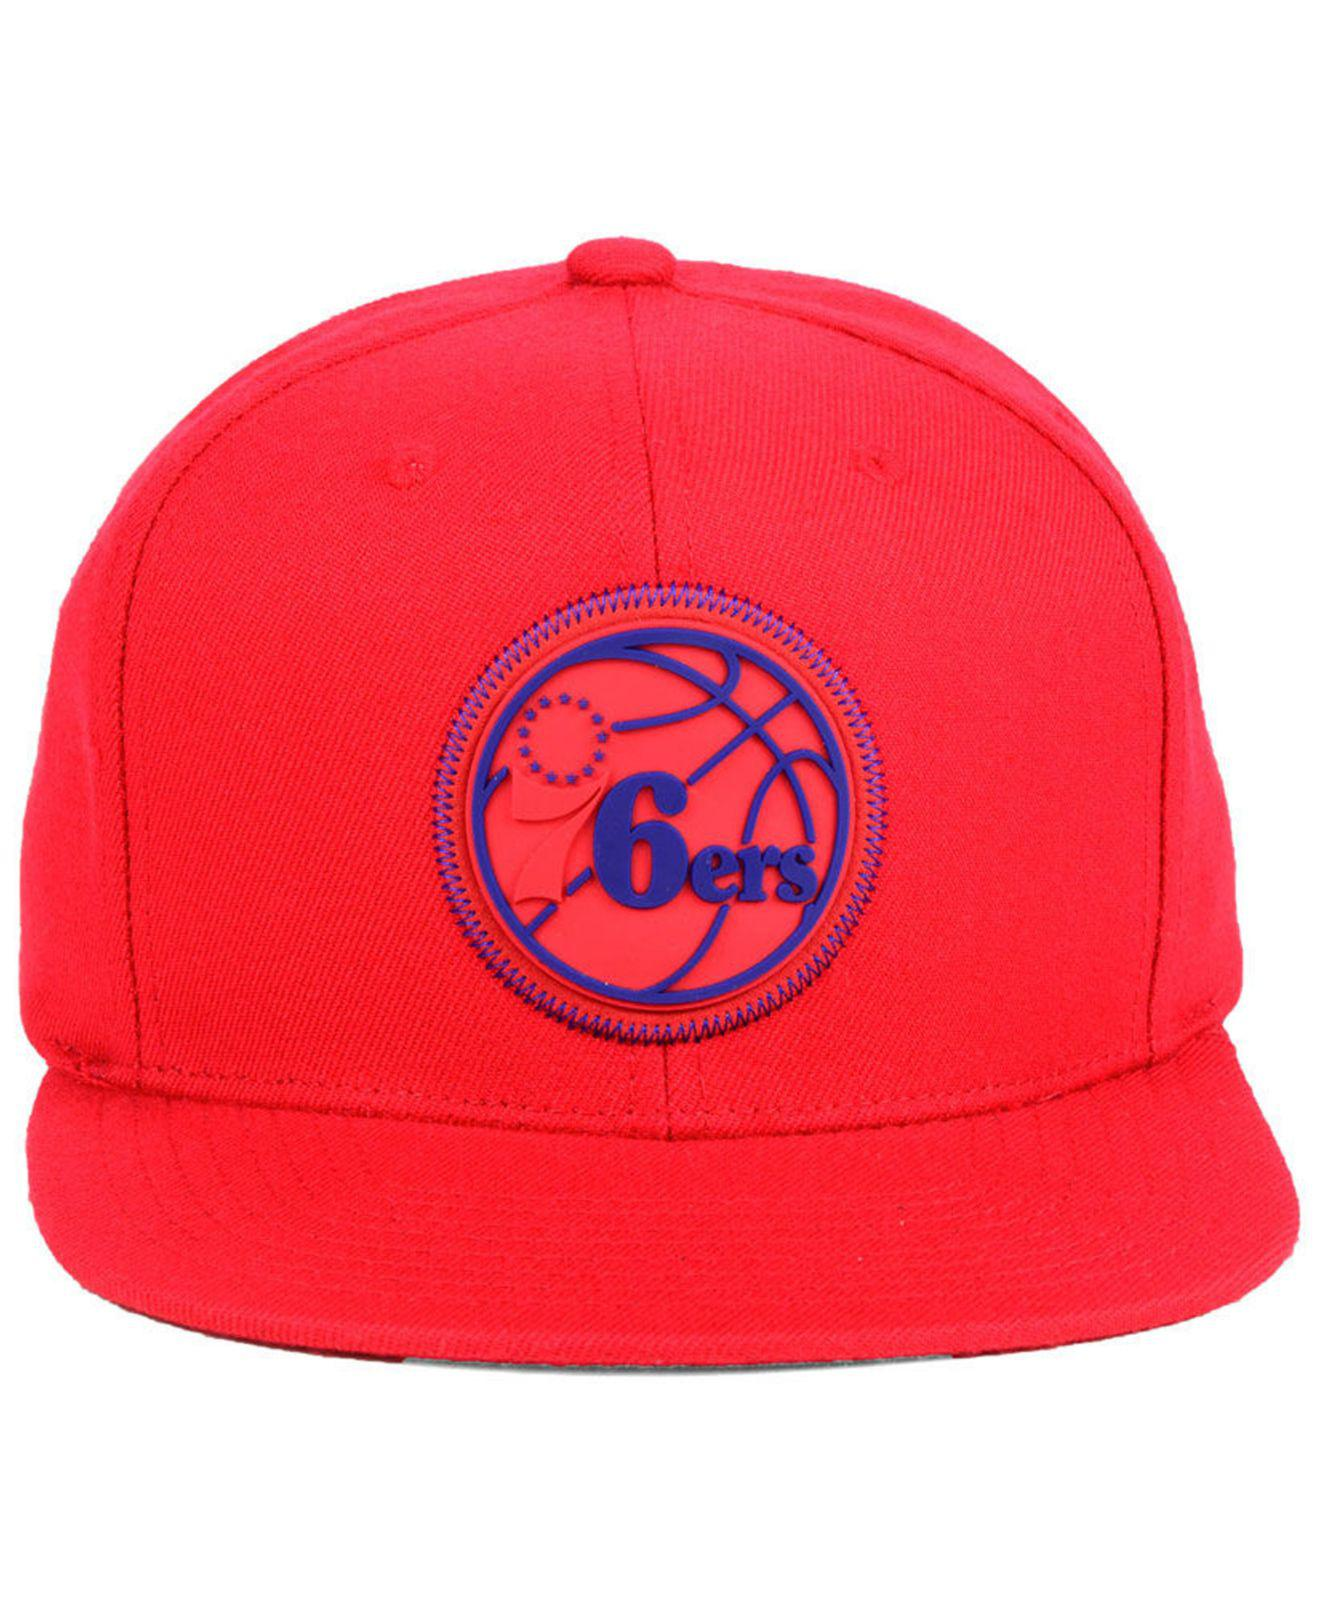 finest selection 6d597 cffd8 Mitchell   Ness Philadelphia 76ers Zig Zag Snapback Cap in Red for ...